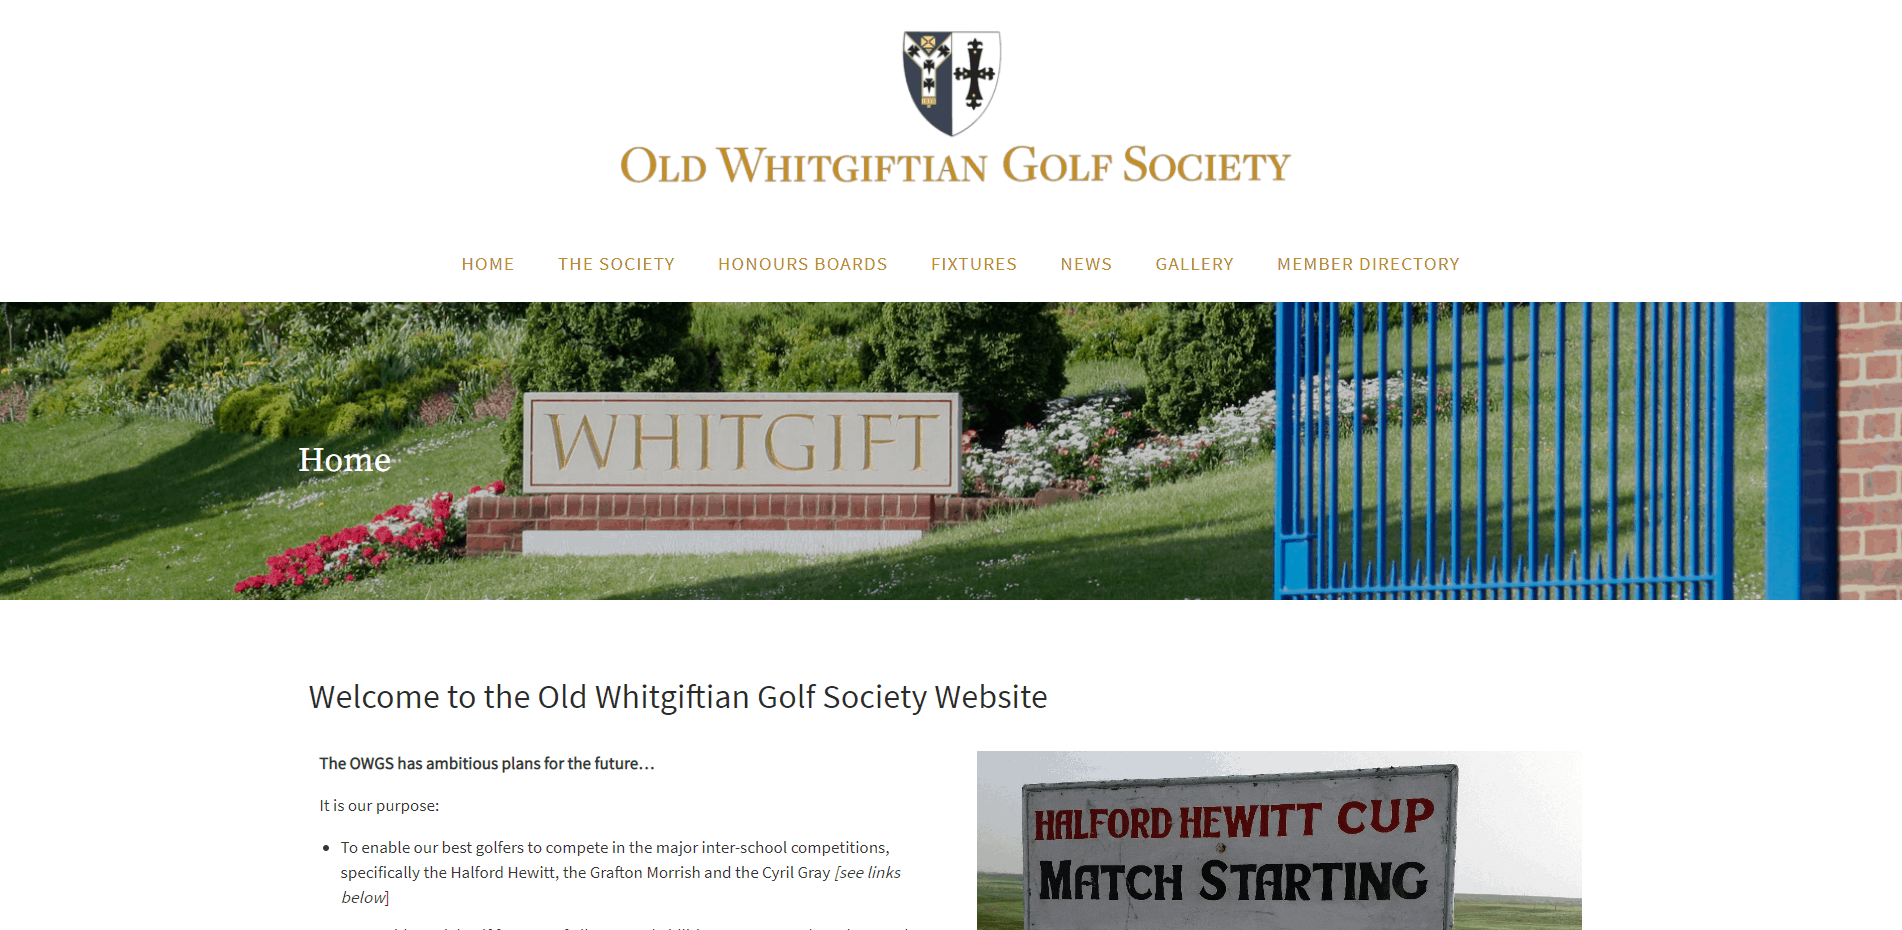 The Old Whitgiftian Golf Society Website